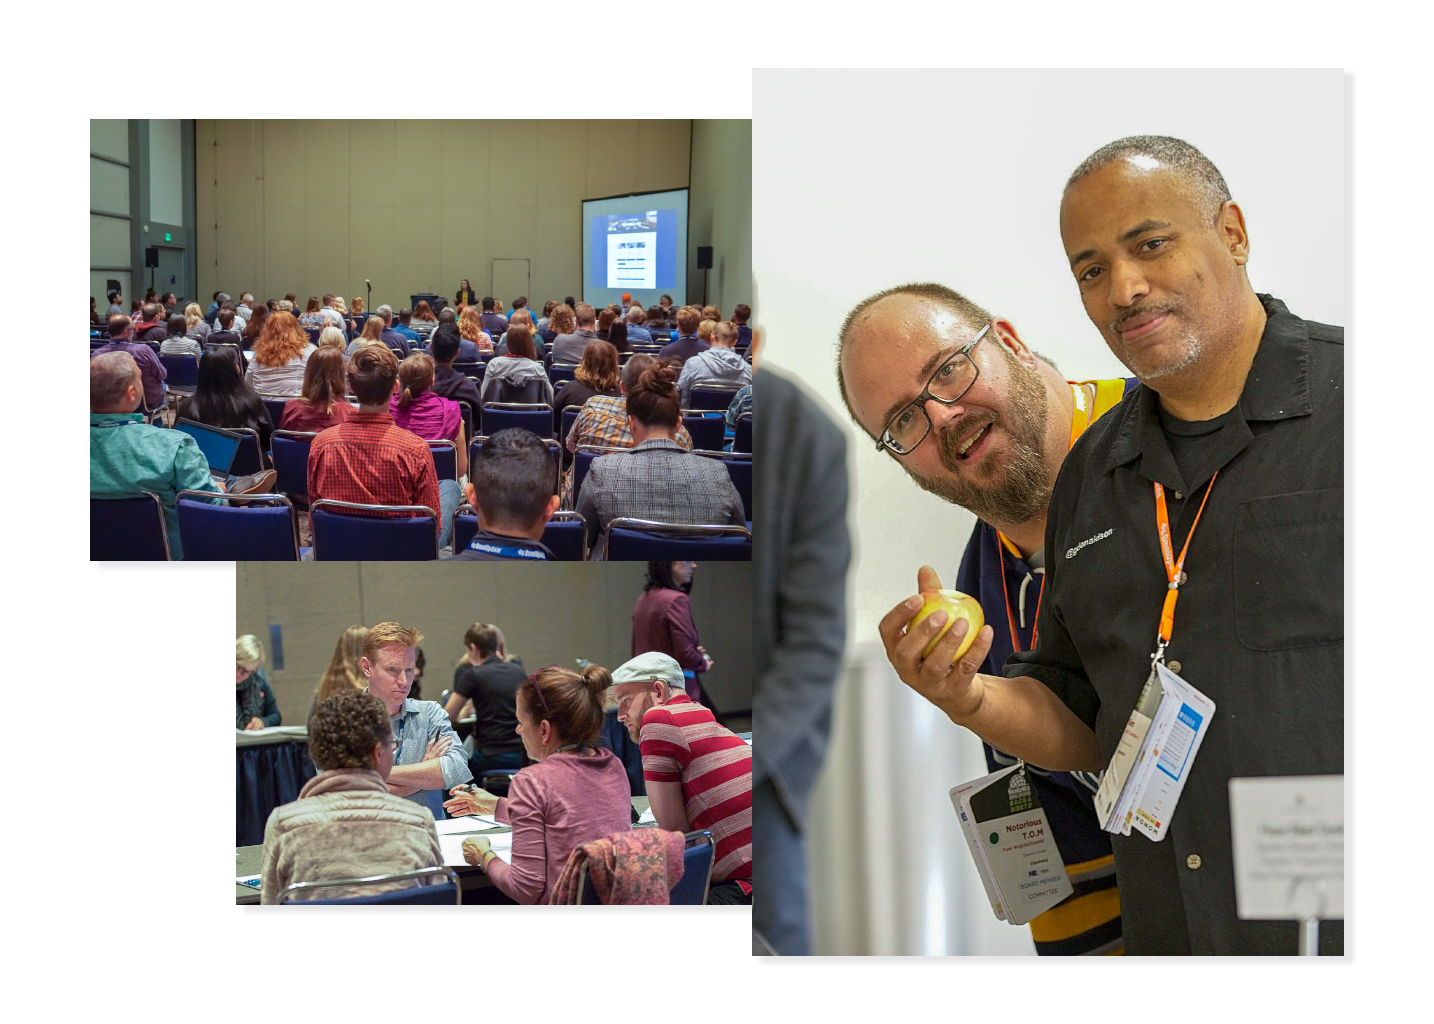 Conference sessions full of people